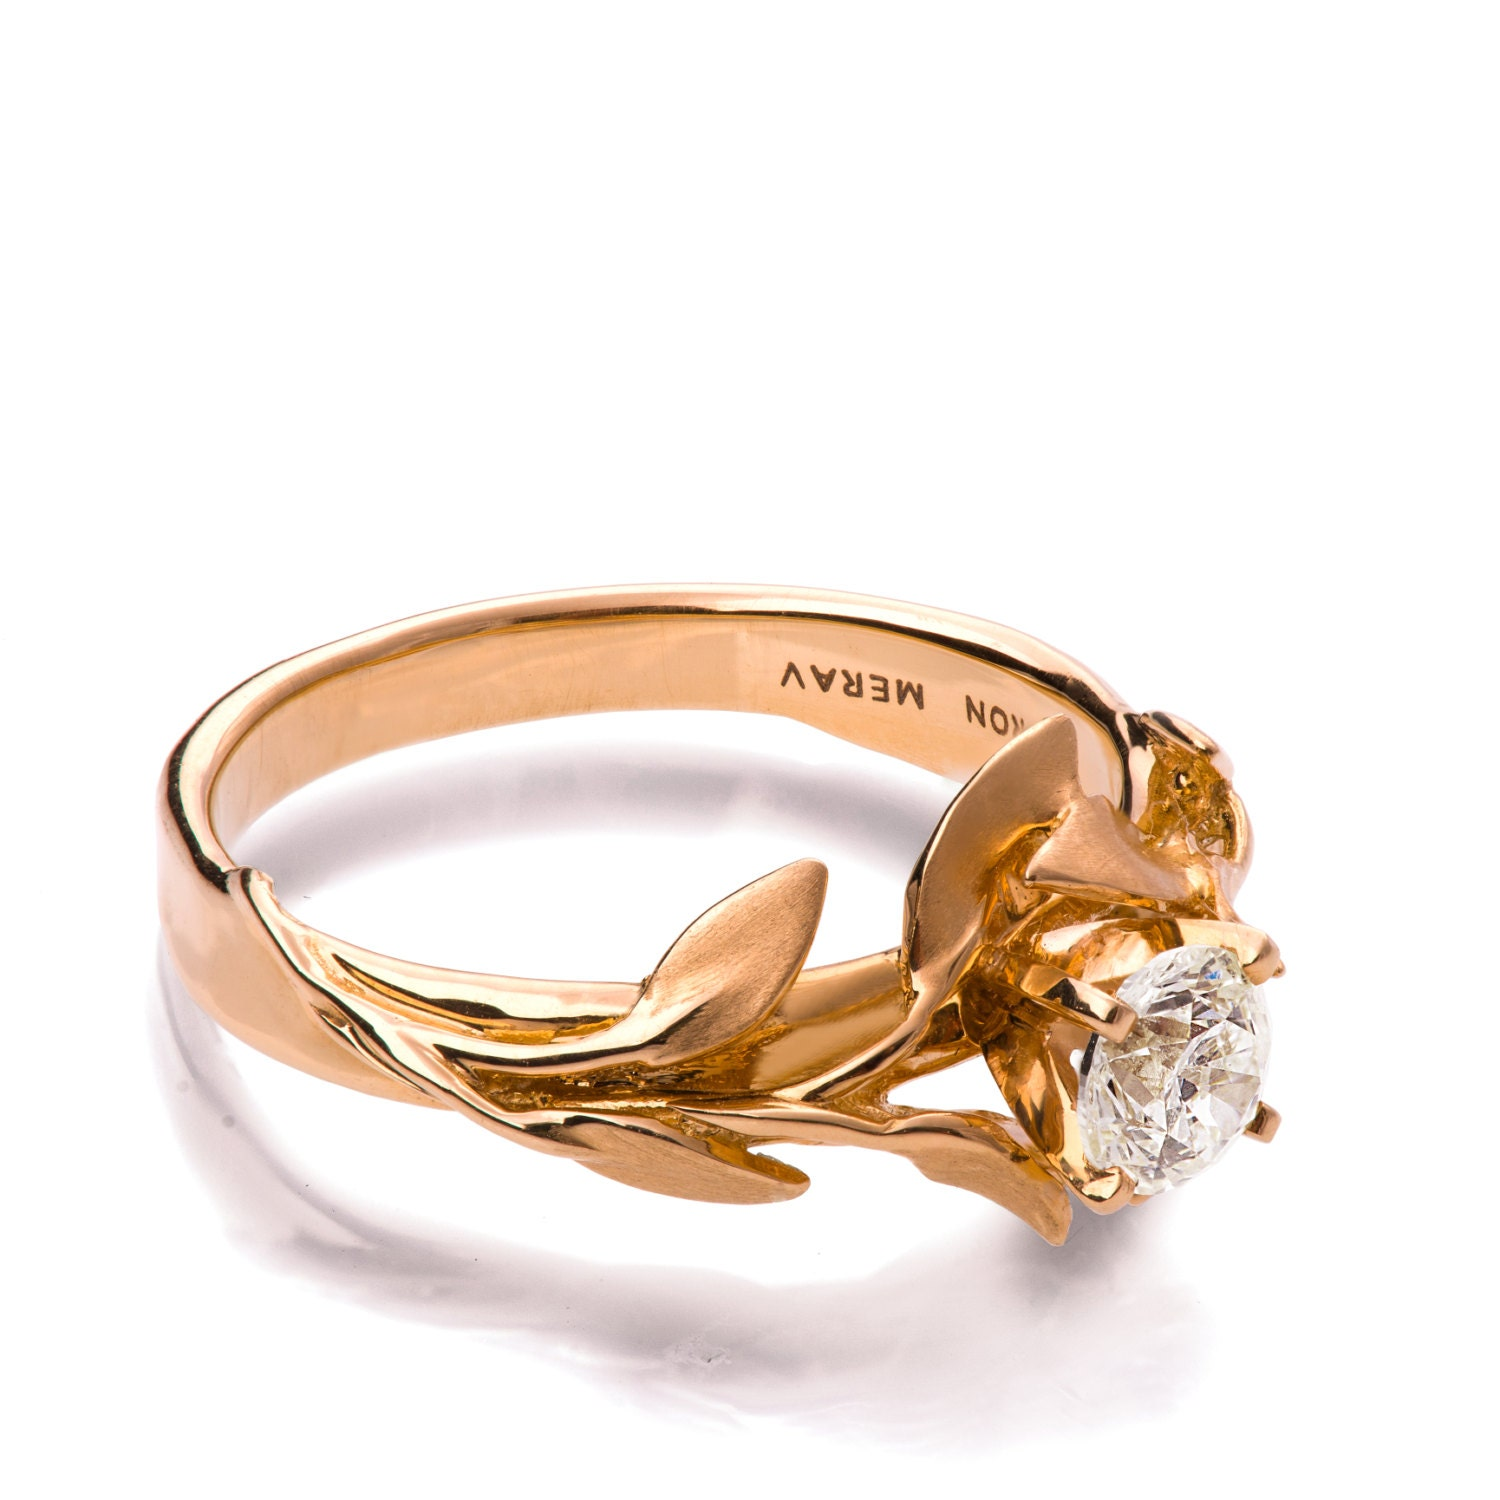 Leaves Engagement Ring No 4 18K Rose Gold and Diamond